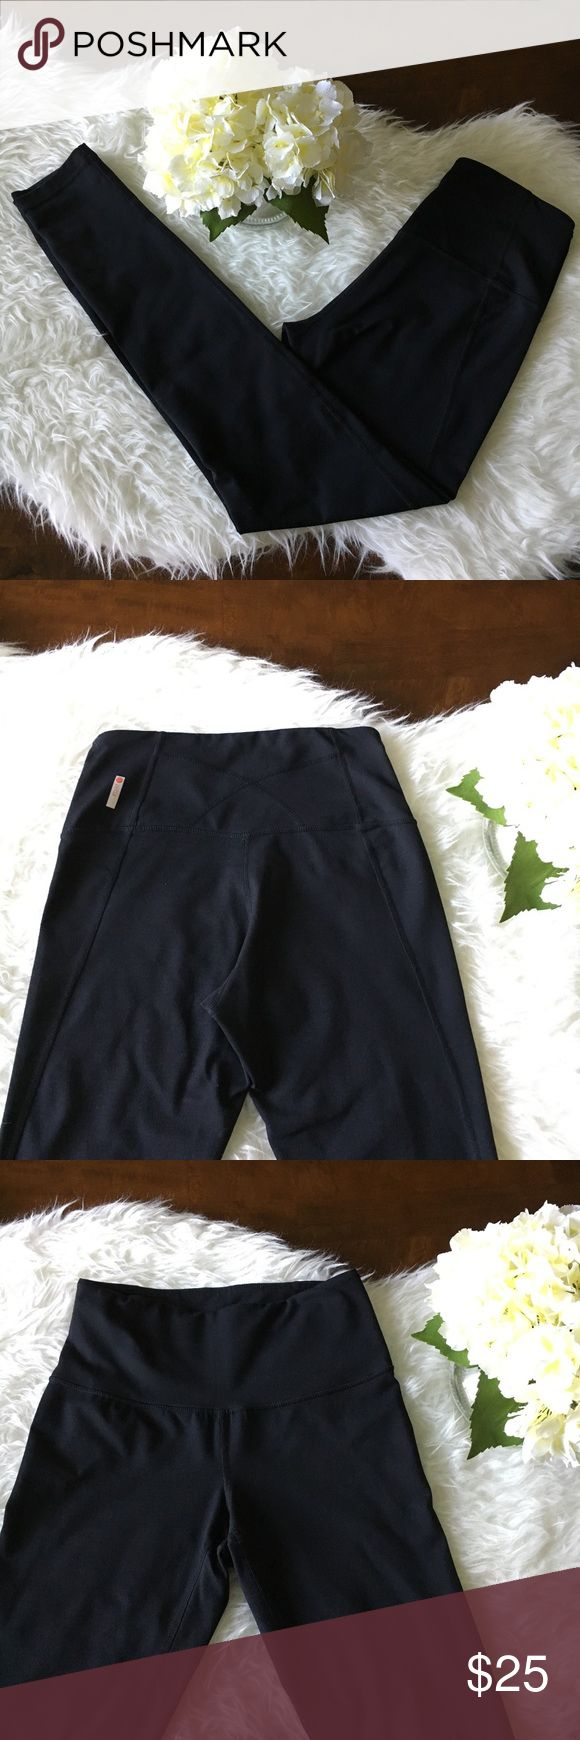 """Zella Black Live In Leggings Excellent used condition. Zella black Live In Leggings from Nordstrom. Features crotch gusset (aka no 🐫 toe) and small pocket at waistband for key or headphones. These are very comfortable. Selling because these are too long on me and I have to roll them up which isn't super flattering on me (I'm 4'11). Size S. 12"""" stretchy waist, inseam: 27"""". Minor if any pilling. No tears, holes, or stains. Smoke free home. No trades please. Zella Pants Leggings"""